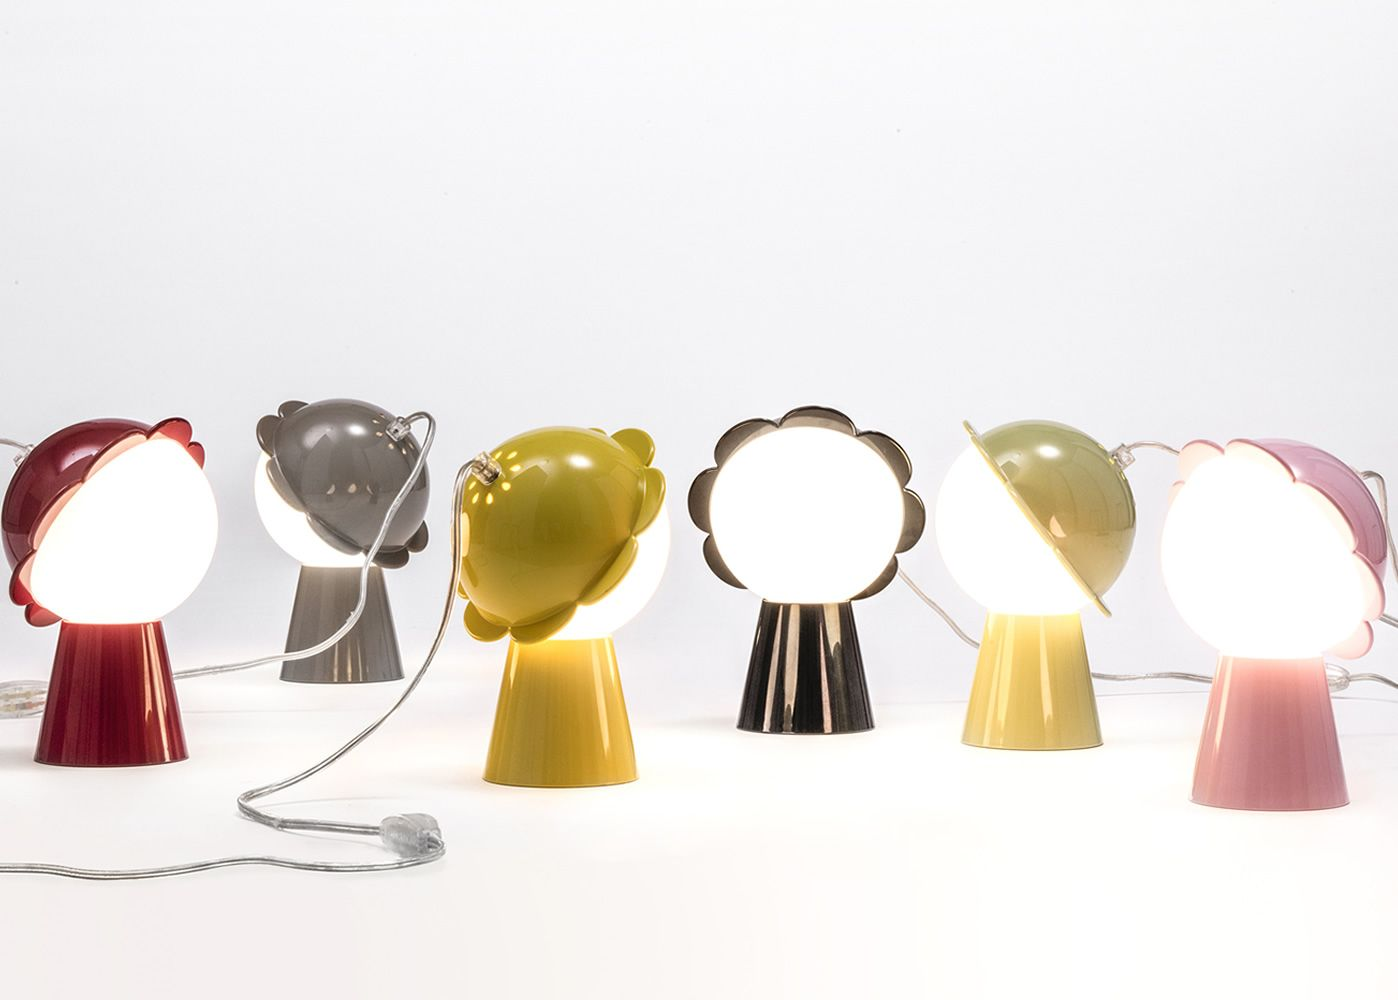 Flower-shaped lamp, available in different colours